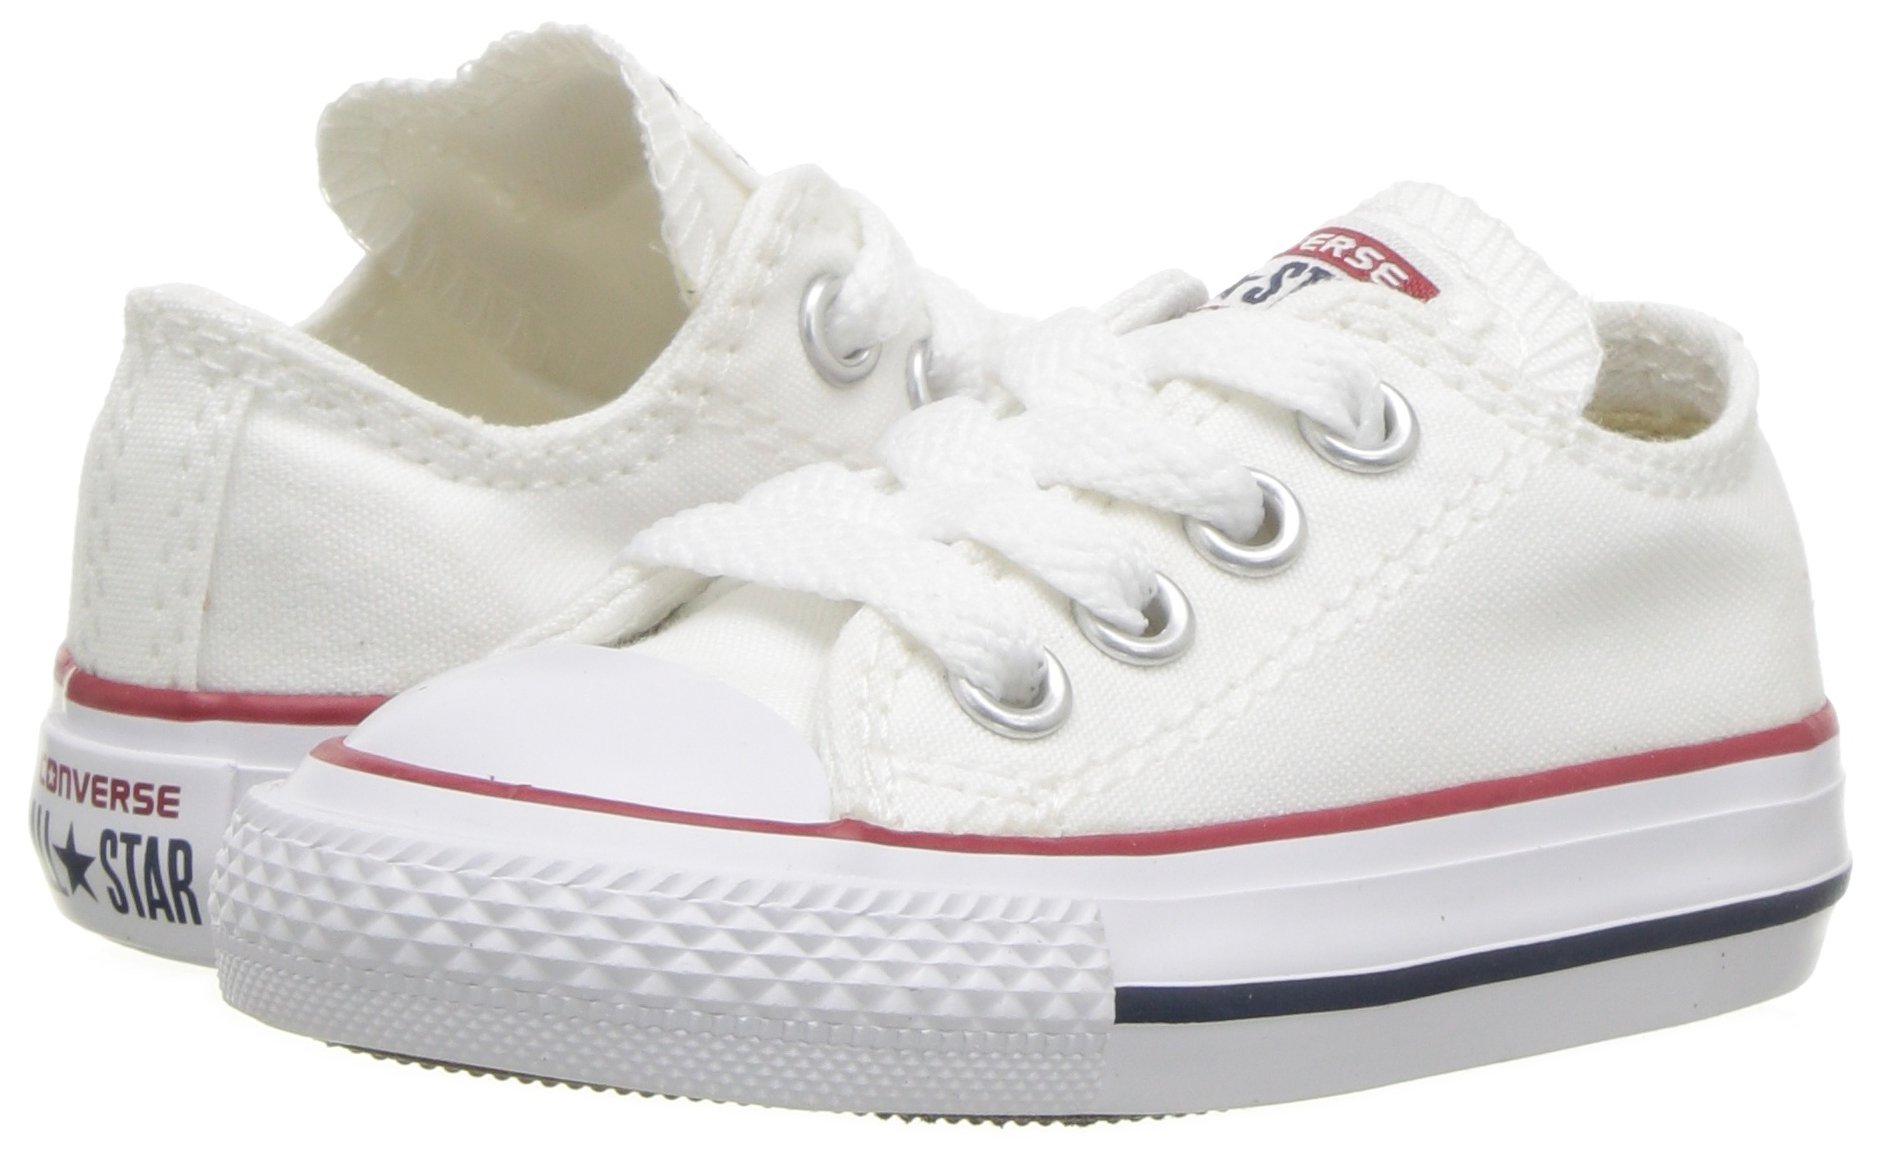 Converse Chuck Taylor All Star Canvas Low Top Sneaker, Optical White, 13.5 M US Little Kid by Converse (Image #6)